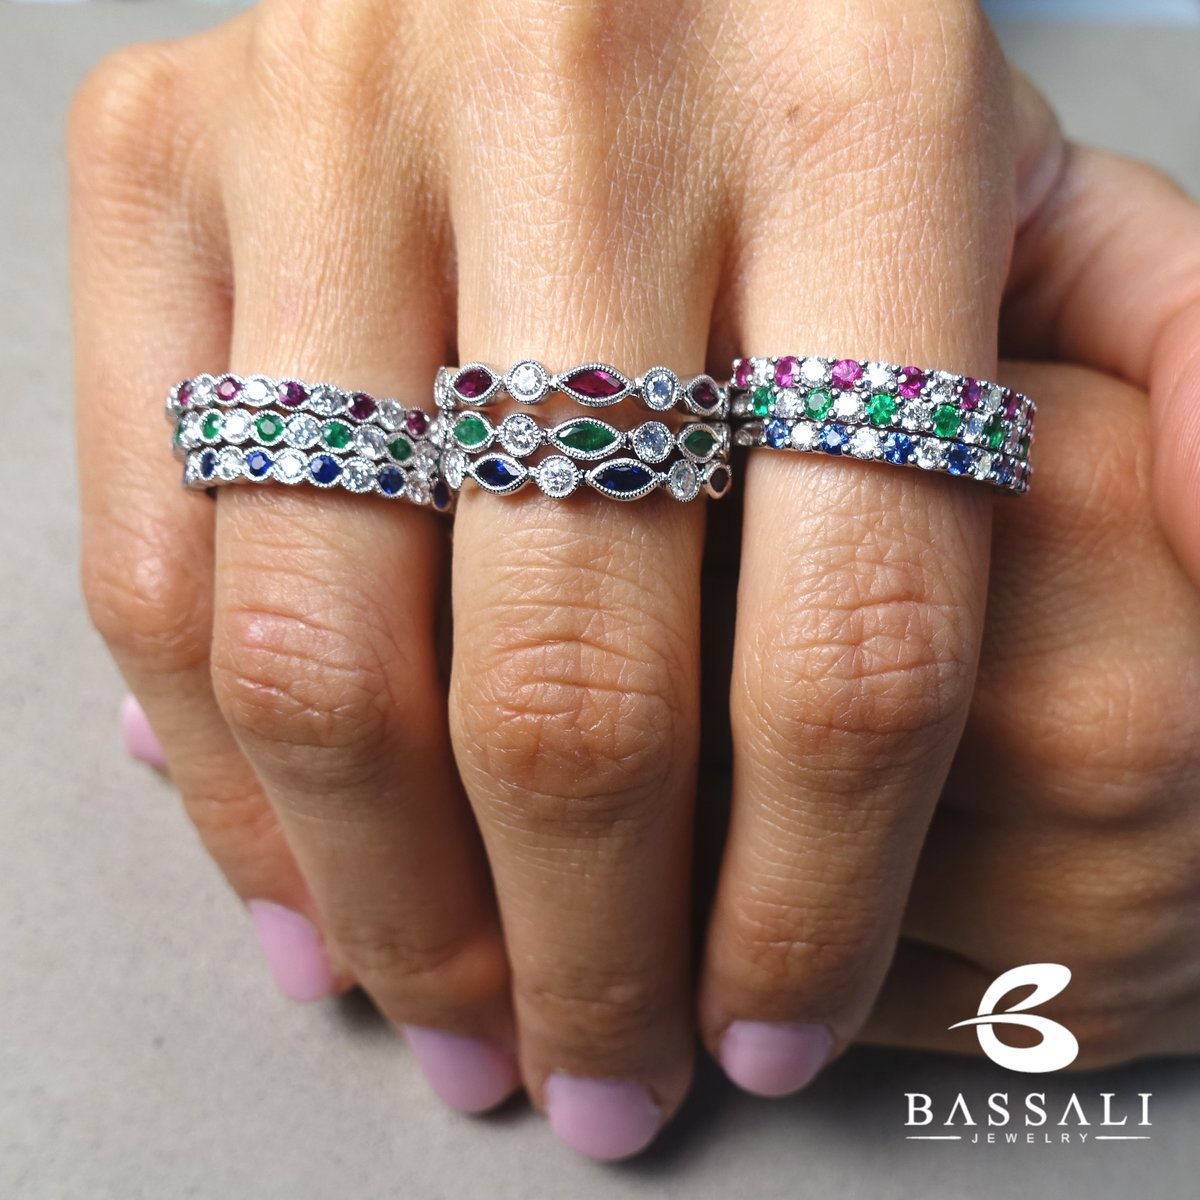 Why have one when you can have them all?  #bassalijewelry #jewelry #fashion #jewellery #accessories #jewelrytweet #style #love #jewelrydesigner #jewelrydesign #ring #jewels #rings #art #jewelryaddict #diamonds #beautiful  #gemstones #ruby #emerald #sapphire #stackablerings